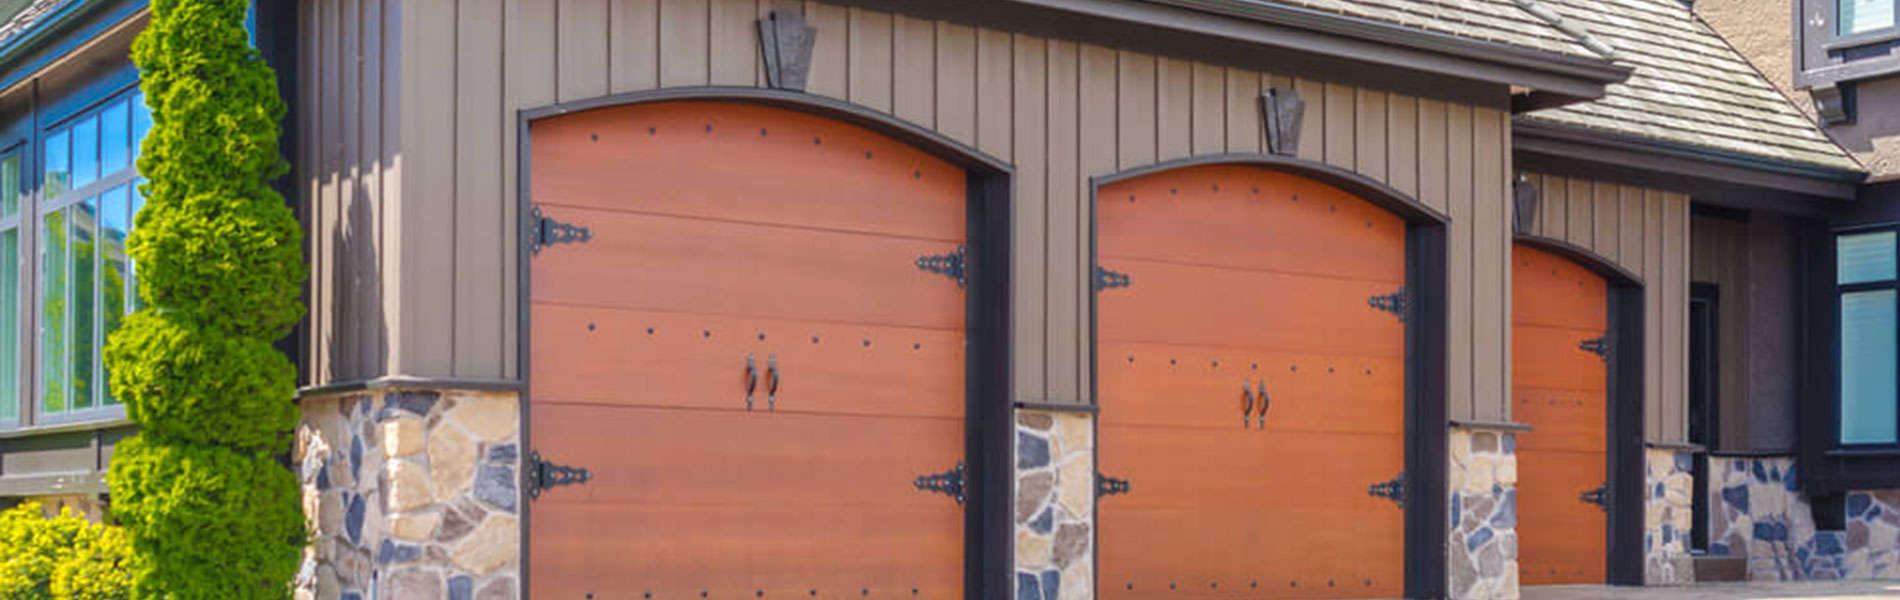 Neighborhood Garage Door Repair Service, Montclair, NJ 865-259-0308